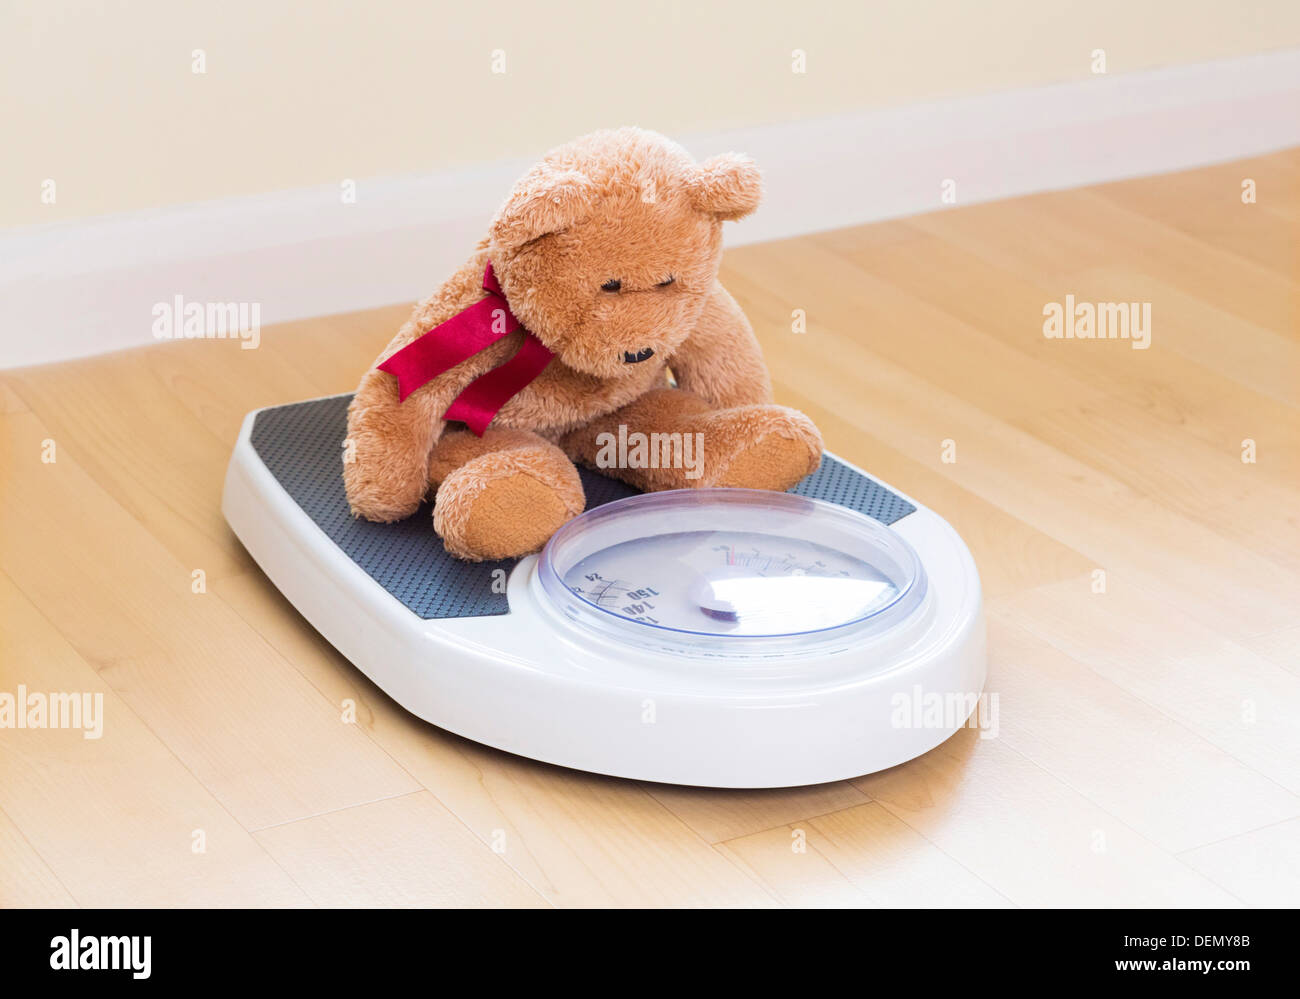 Ours en peluche sur une balance Photo Stock